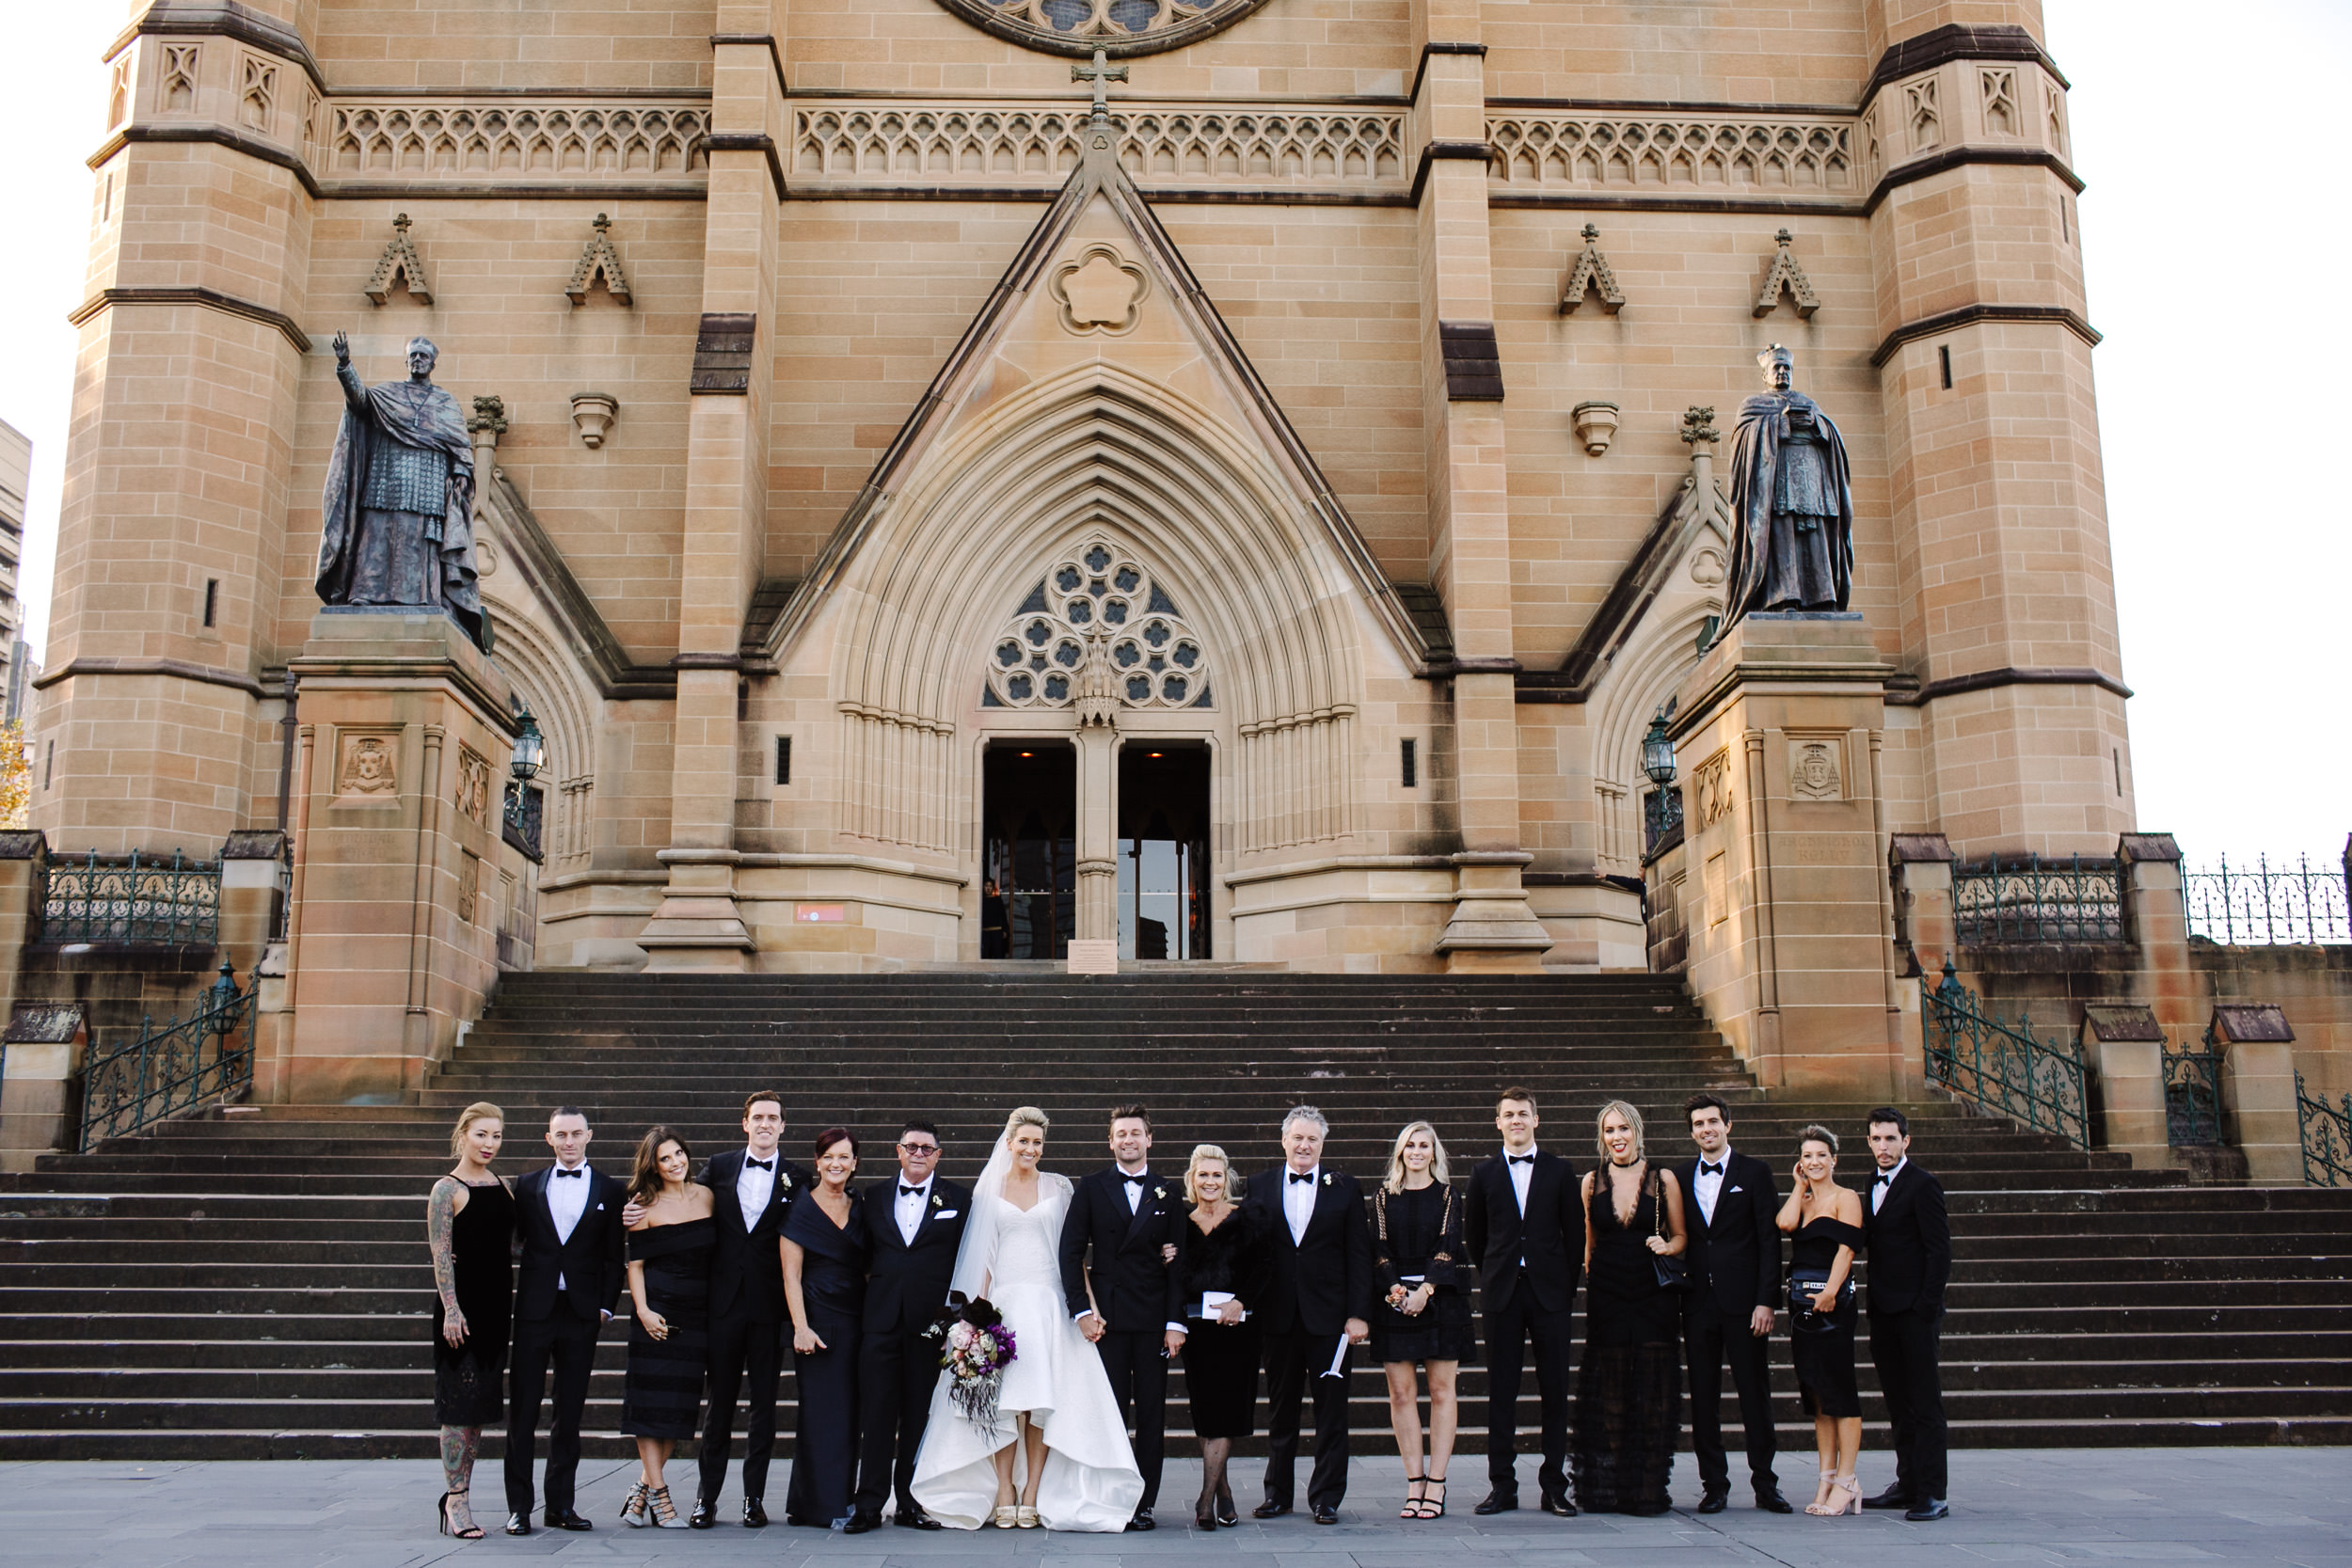 justinaaronphotographer_the_old_clare_kensignton_street_social_st_andrews_cathedral_sydney_alana_chris_b-001-116.jpg